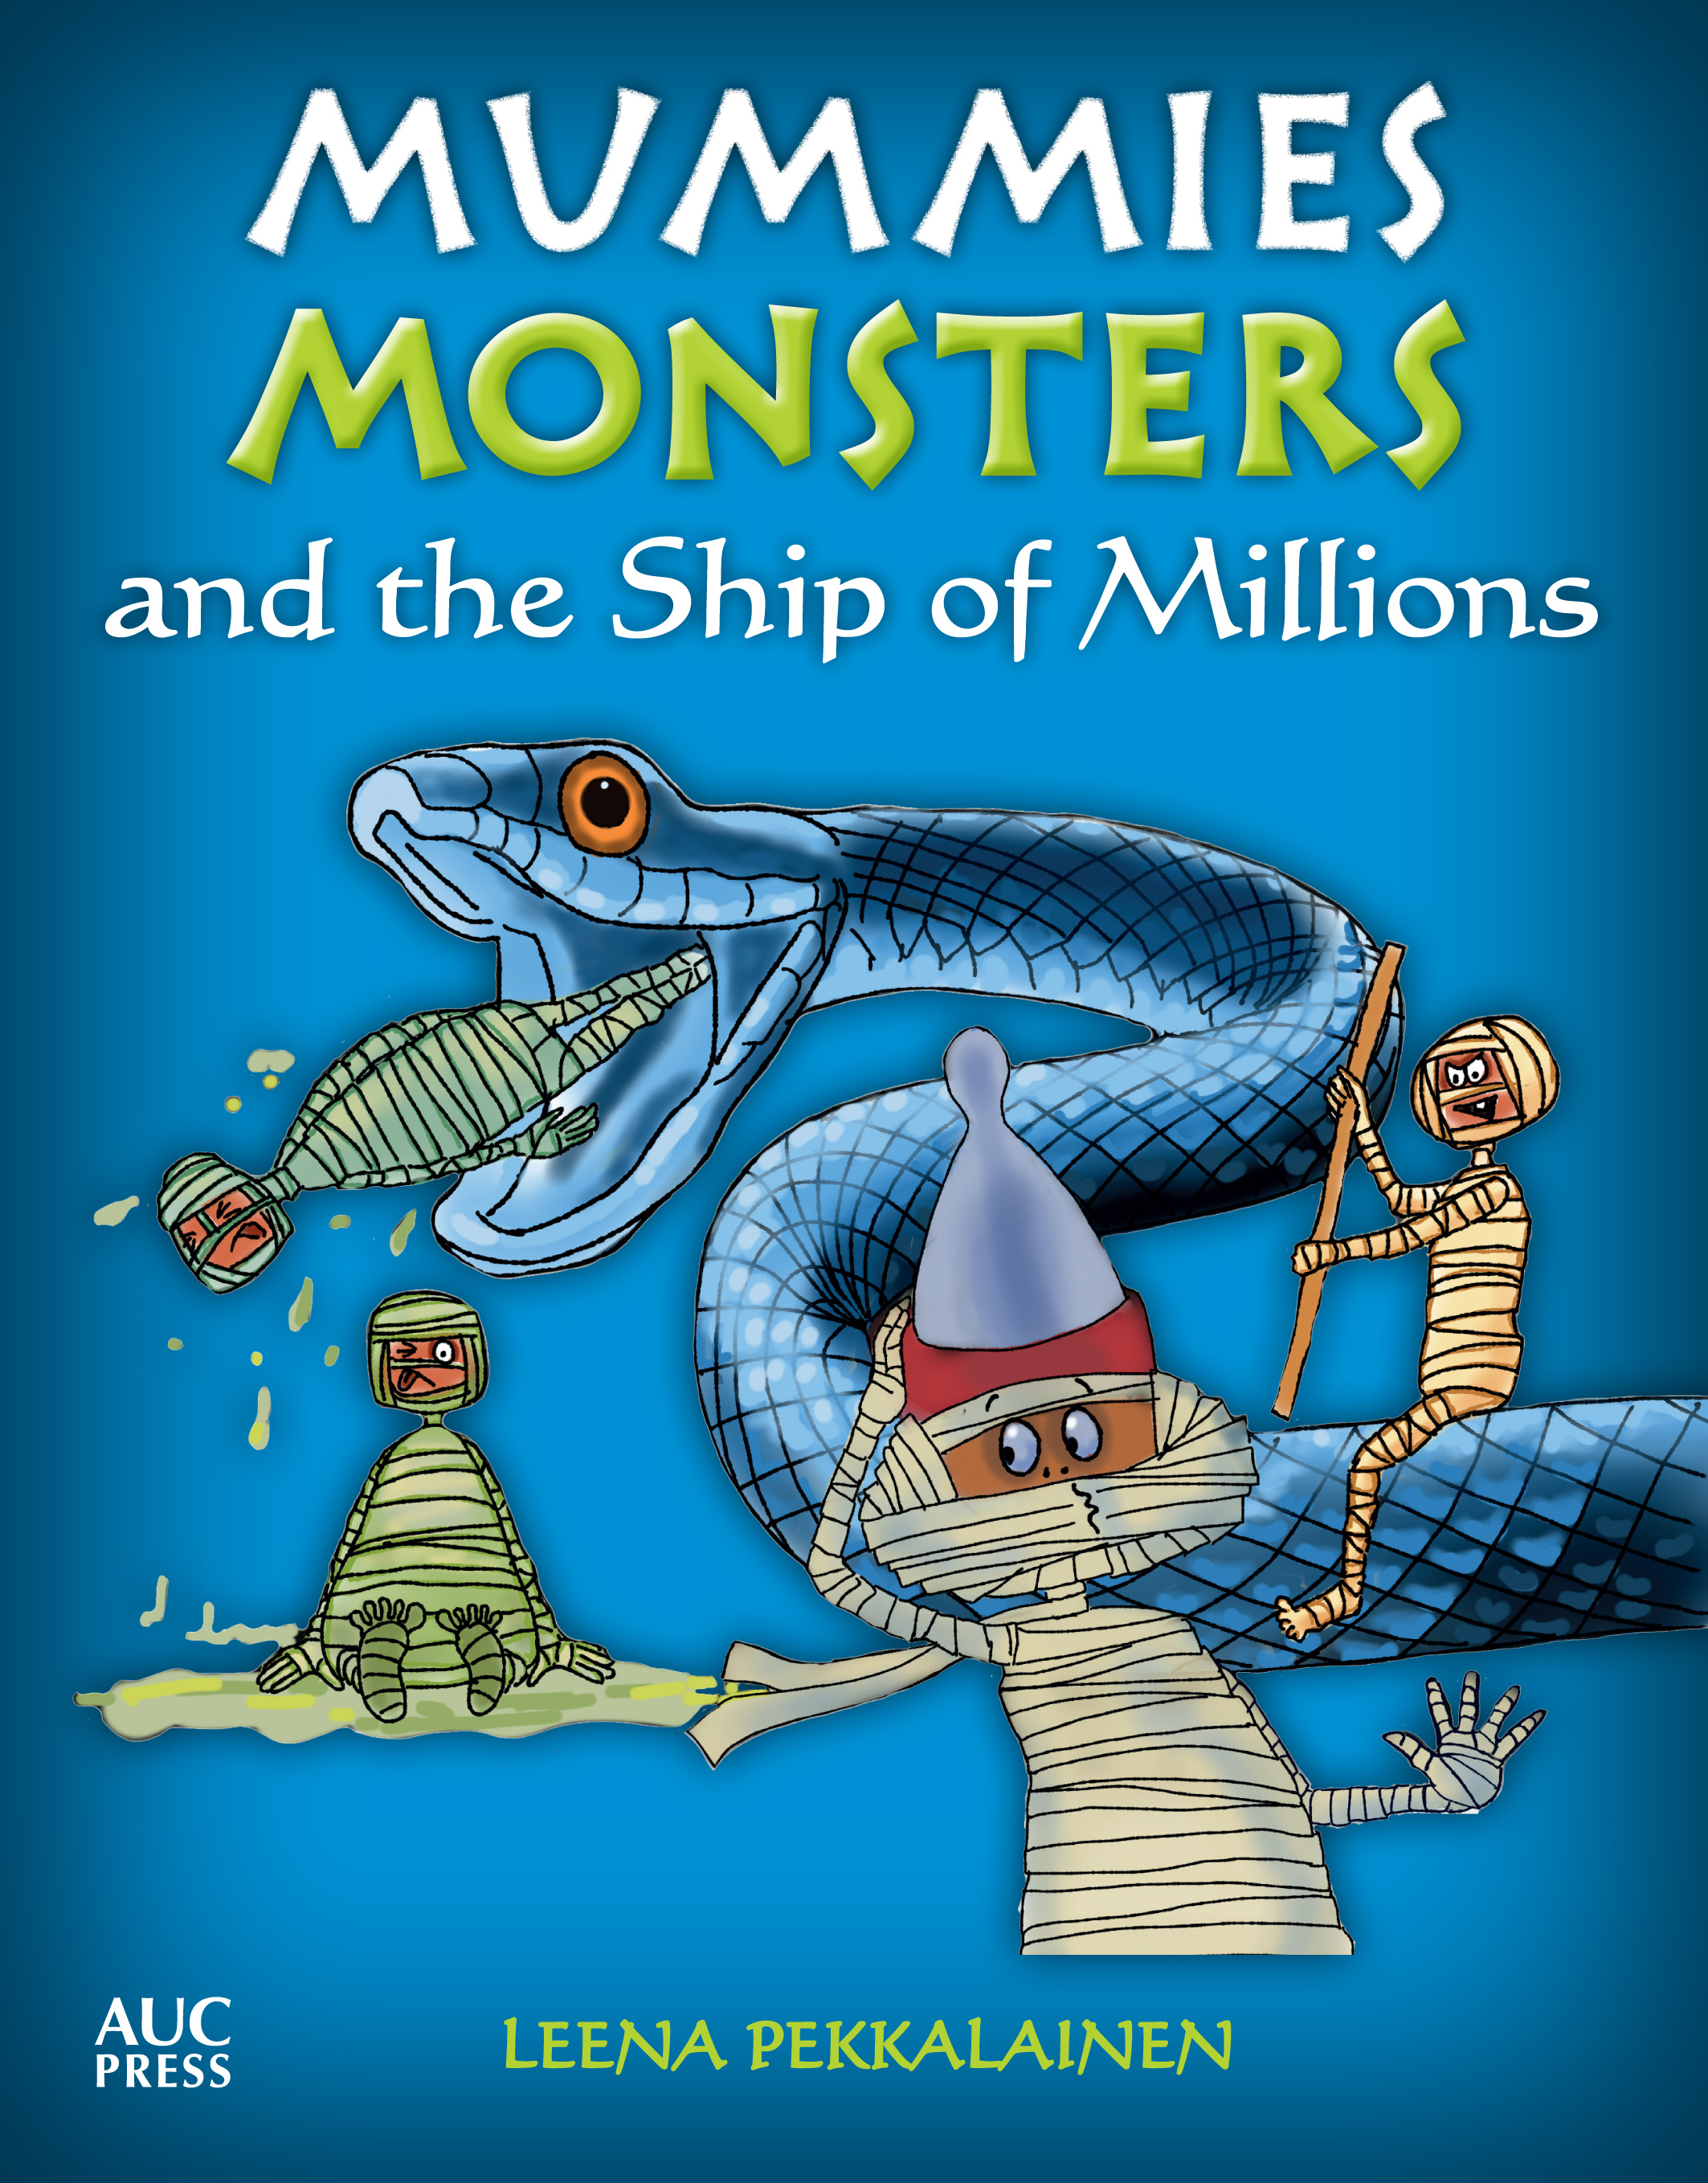 Mummies, Monsters and the Ship of Millions